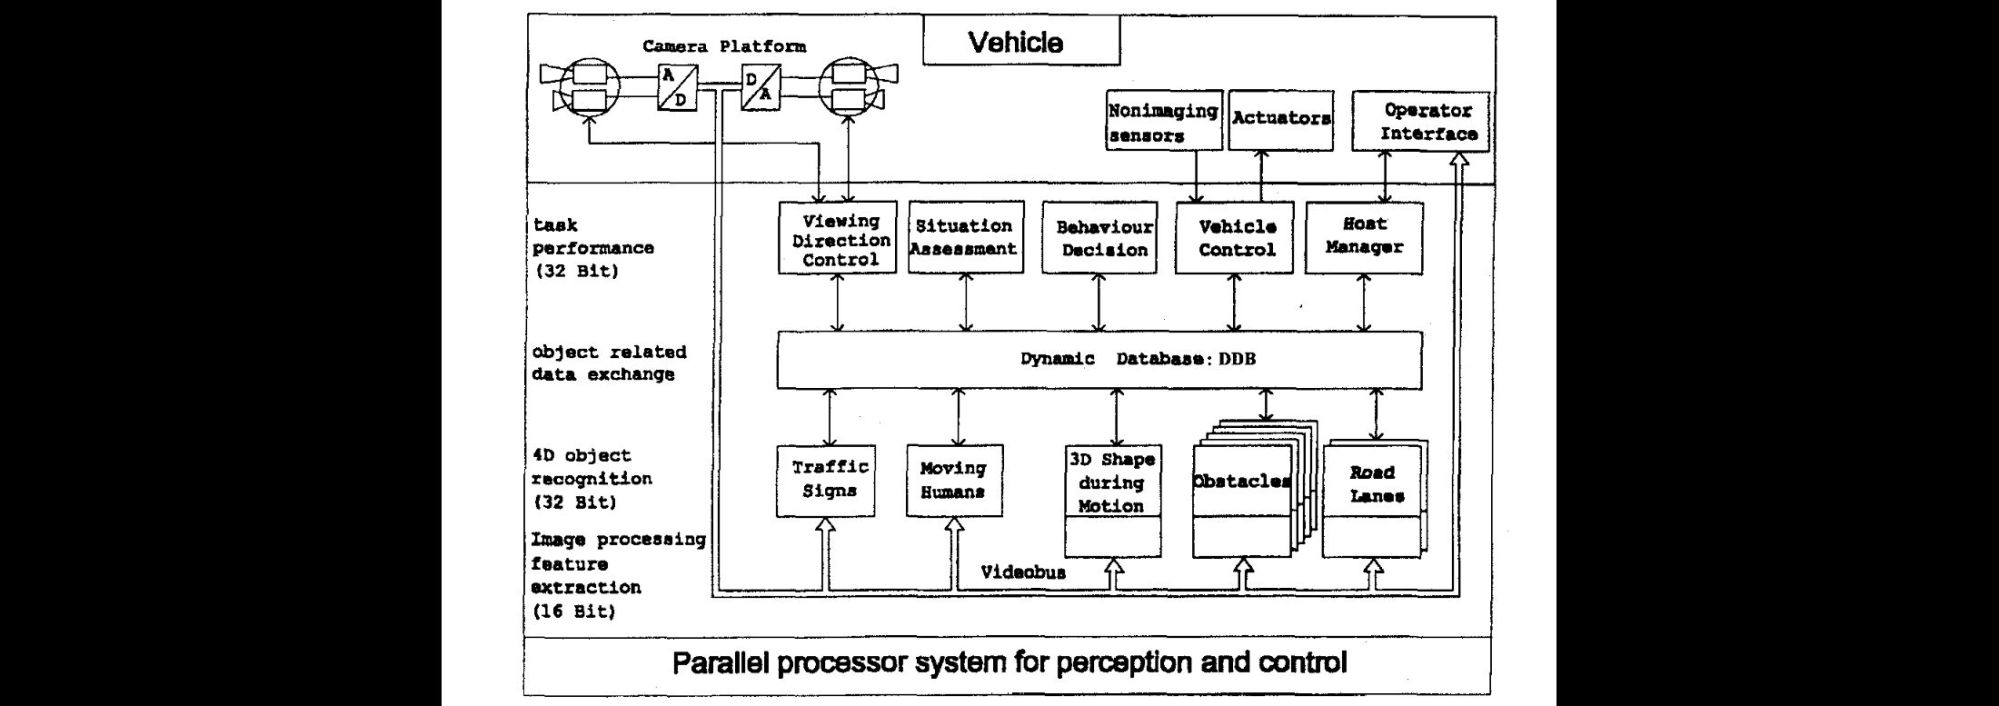 hight resolution of equipment of a passenger car mercedes 500 sel with sense of vision in the framework of the eureka project prometheus iii